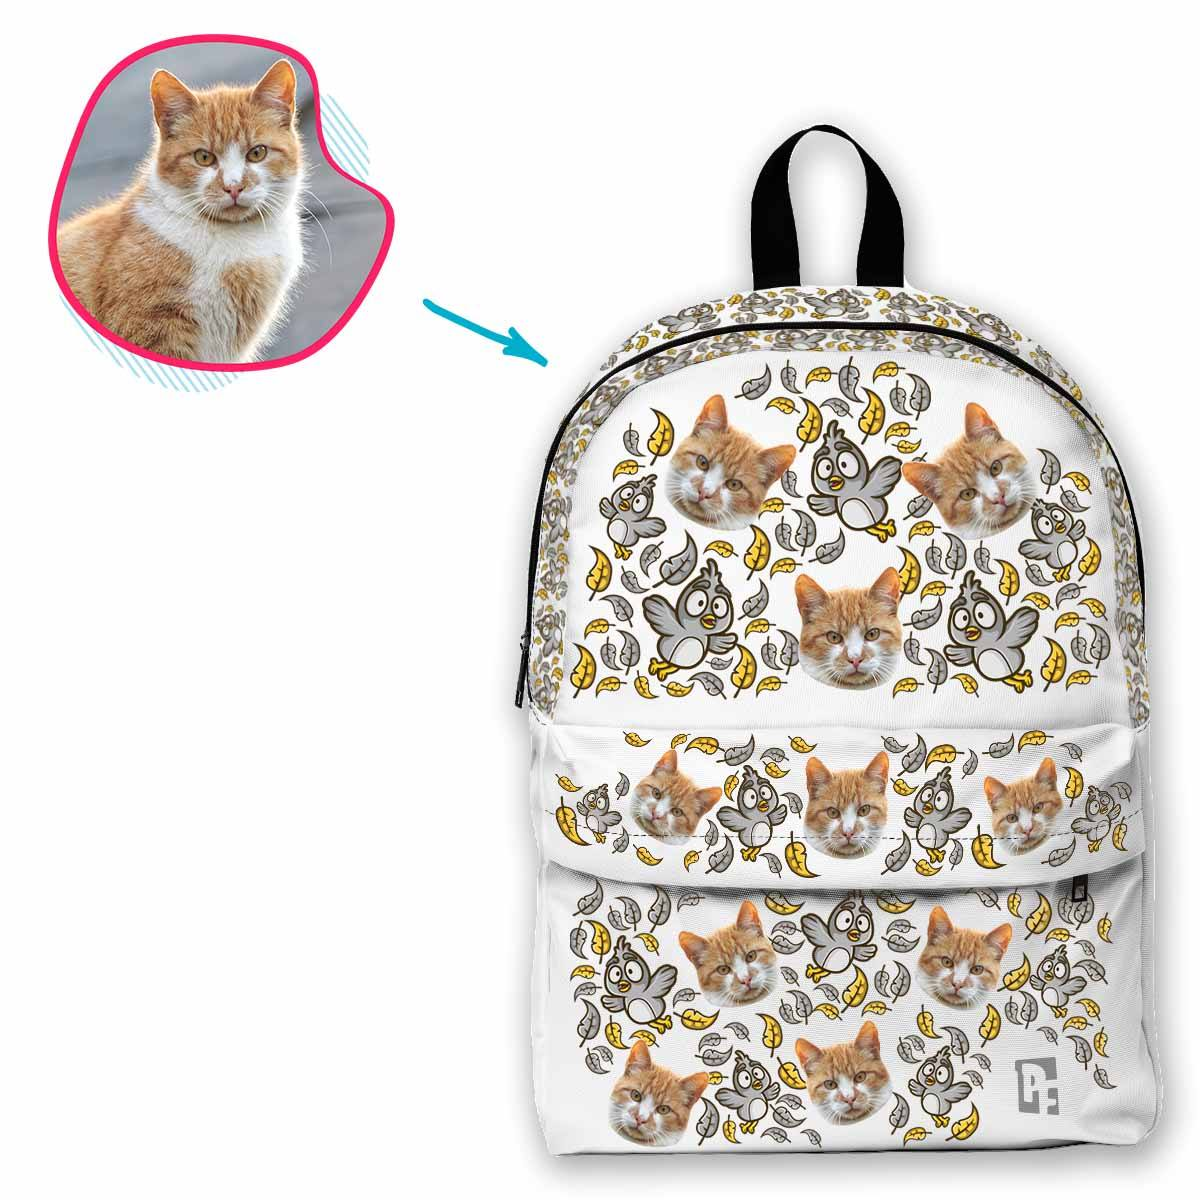 white Bird classic backpack personalized with photo of face printed on it